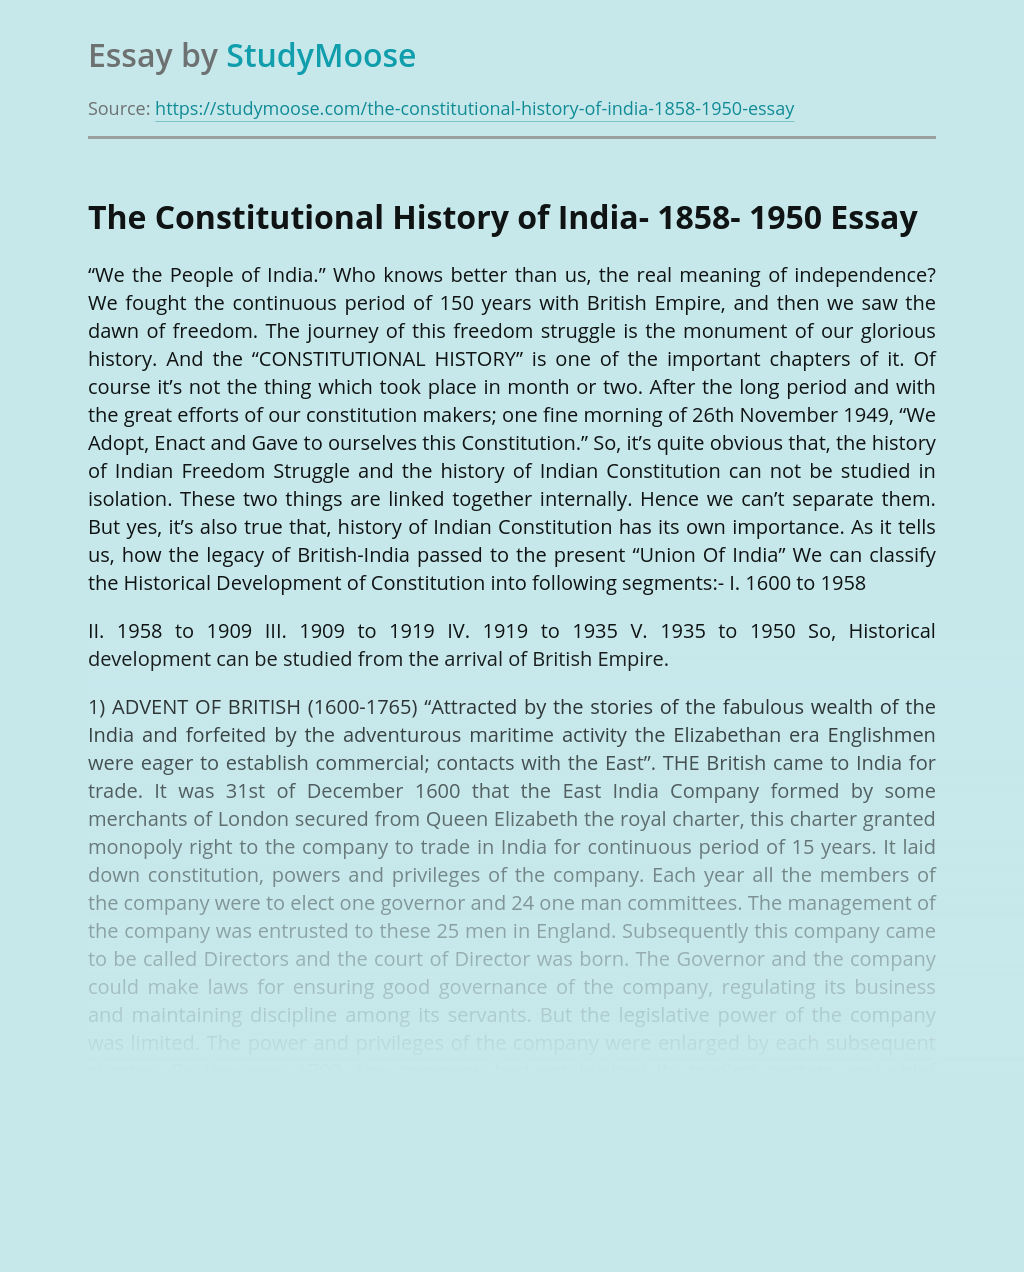 The Constitutional History of India- 1858- 1950